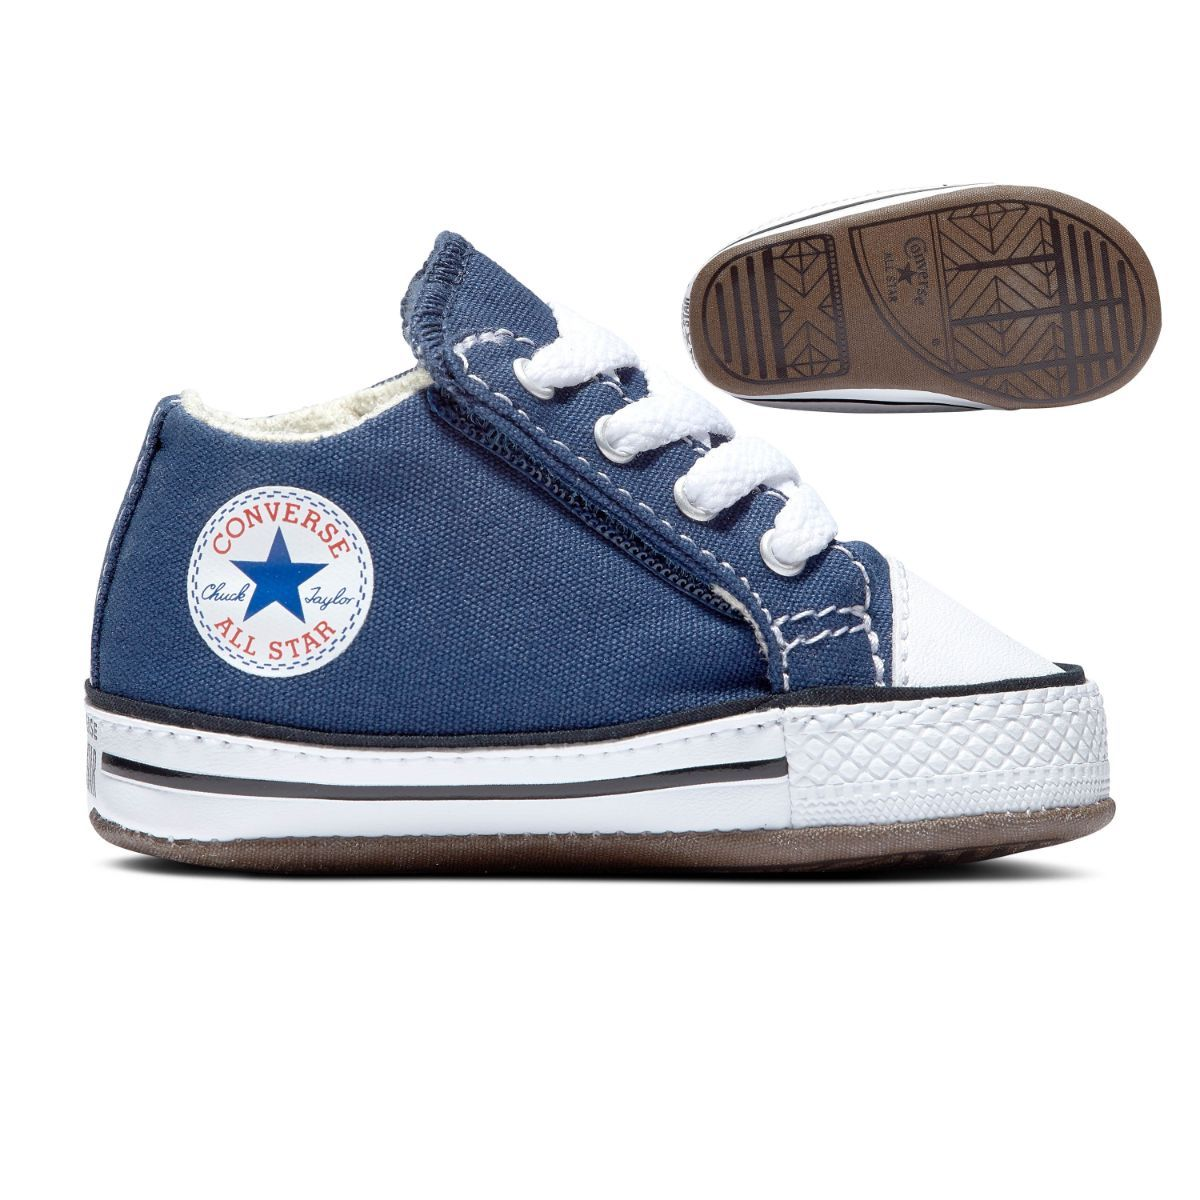 Infant Chuck Taylor All Star Navy Cribster